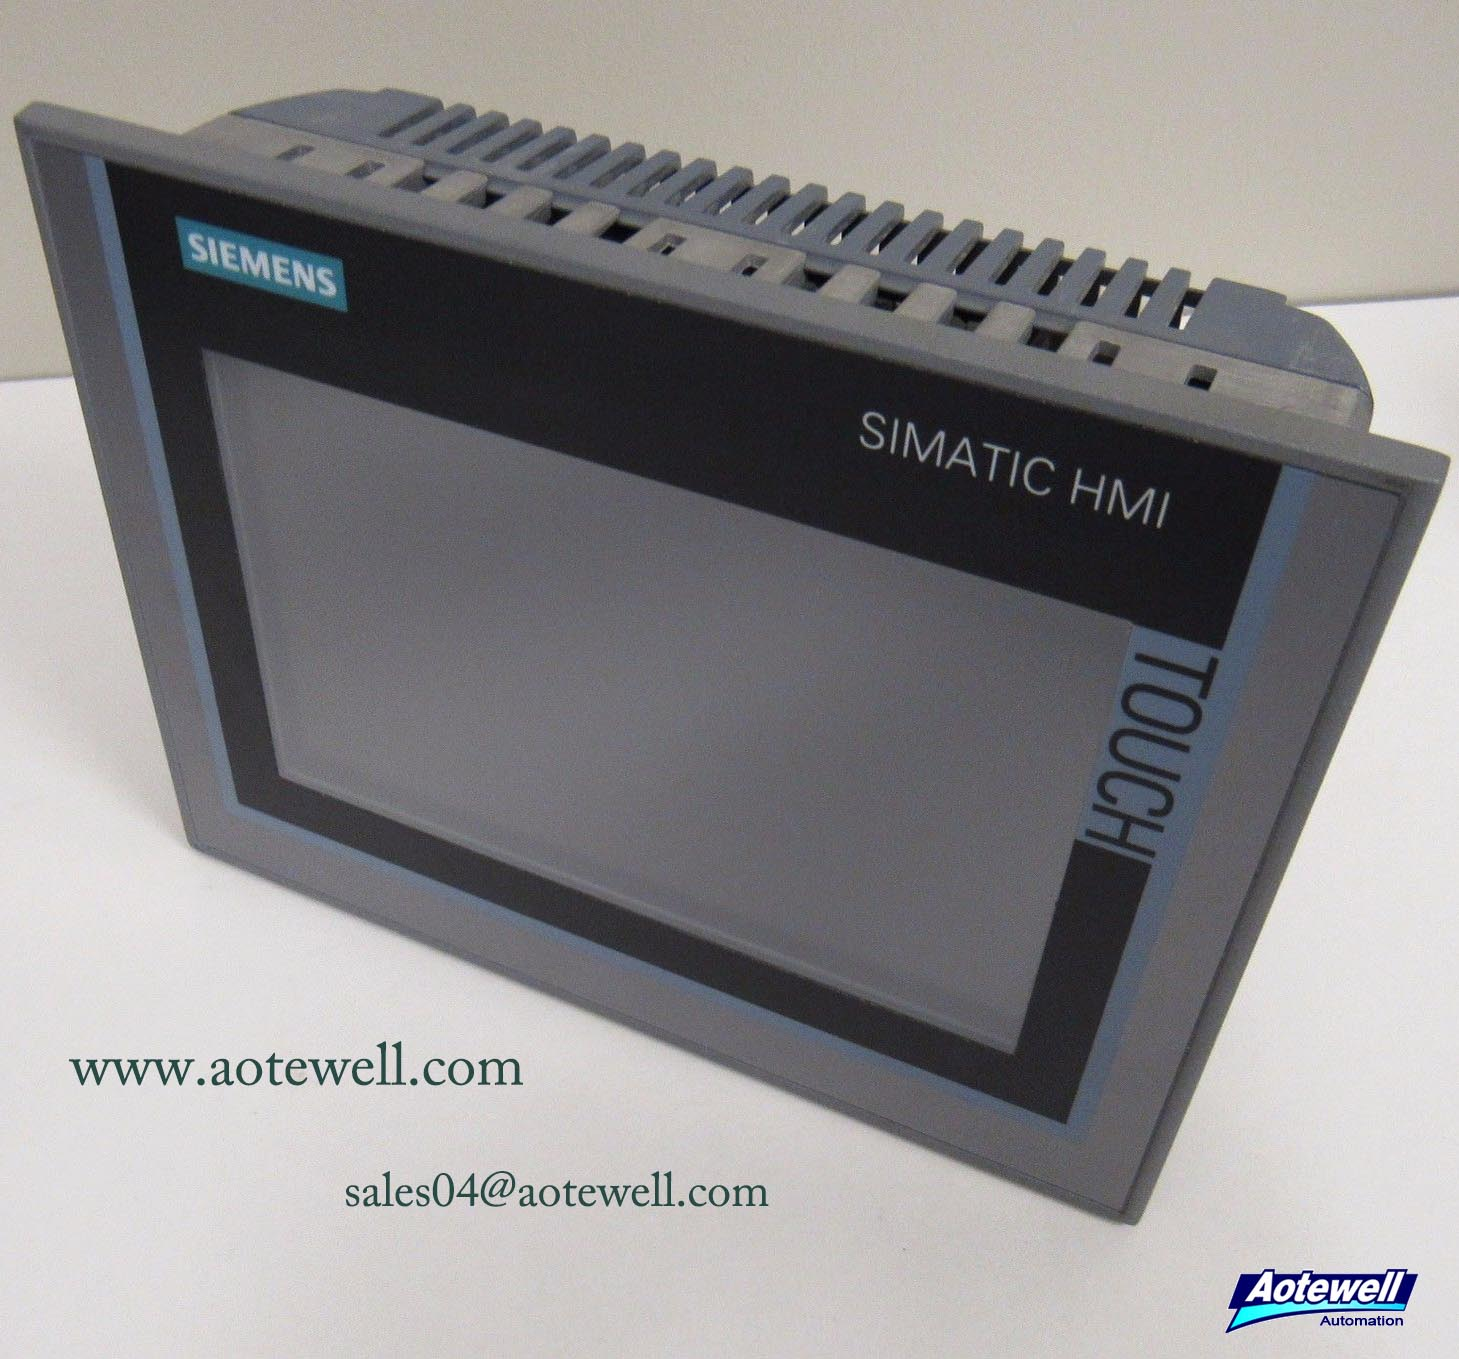 Siemens Simatic HMI KP/KTP Panel Series Efficient Operation